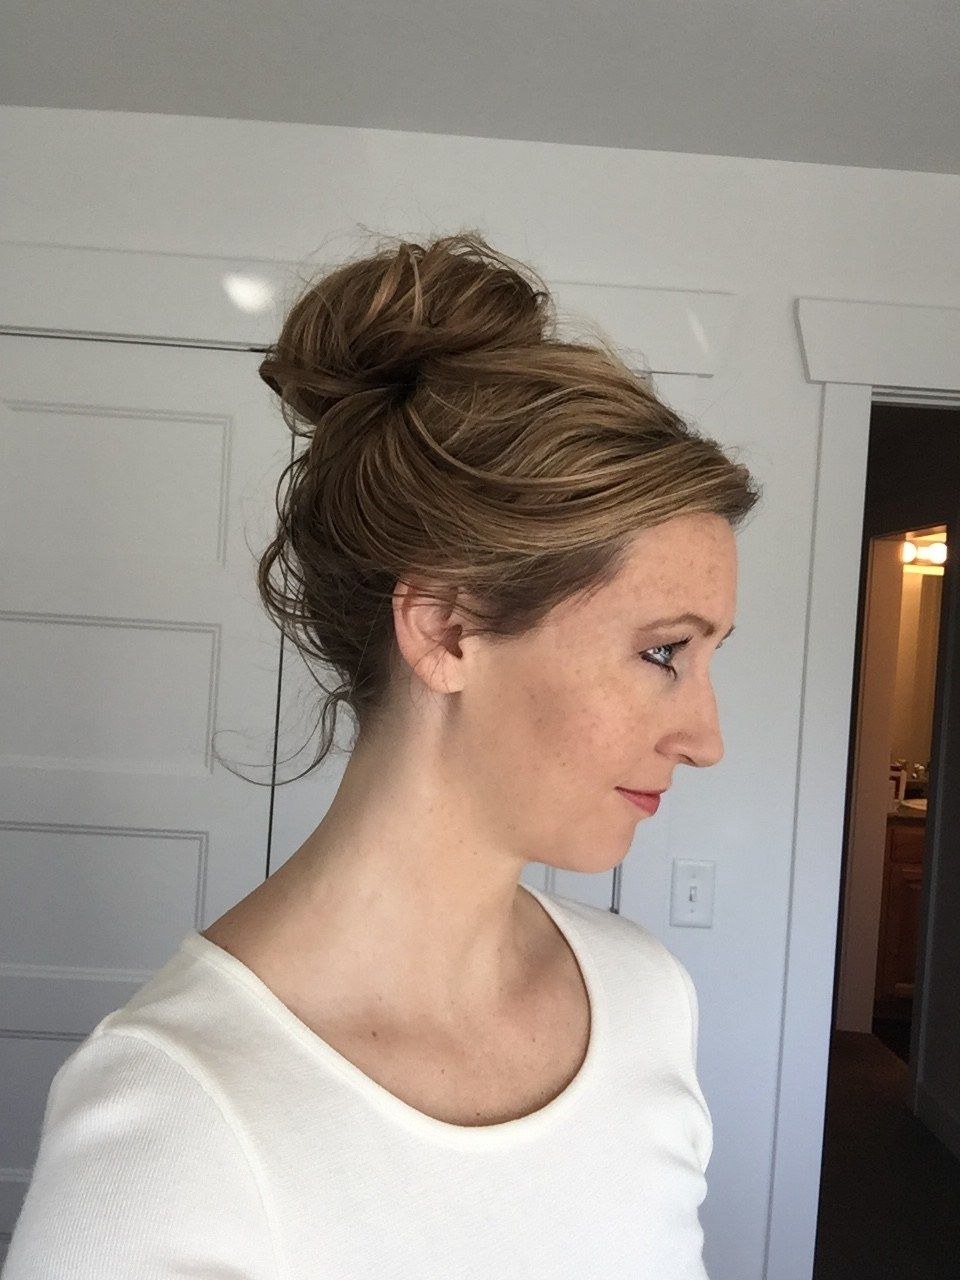 5 Easy Hairstyles To Create On 3 Day Old Hair The Perfect Product To Help You Get It My Style Spot Easy Hairstyles Clever Hairstyles Hair Styles